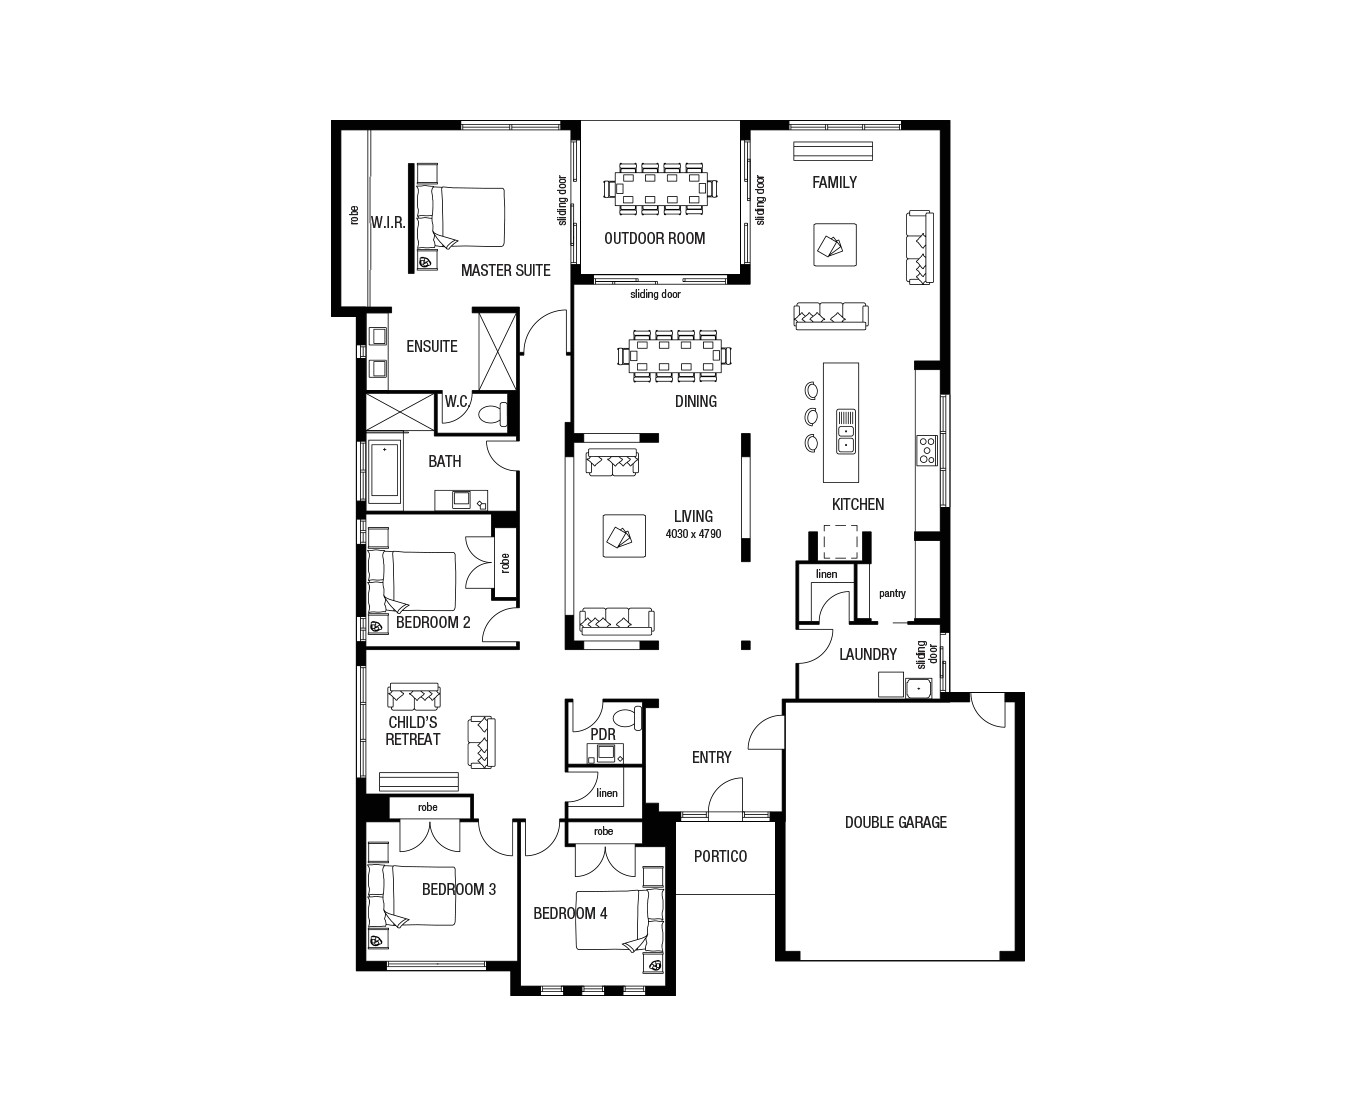 Metricon Home Floor Plans Metricon Homes House Plans House Plans